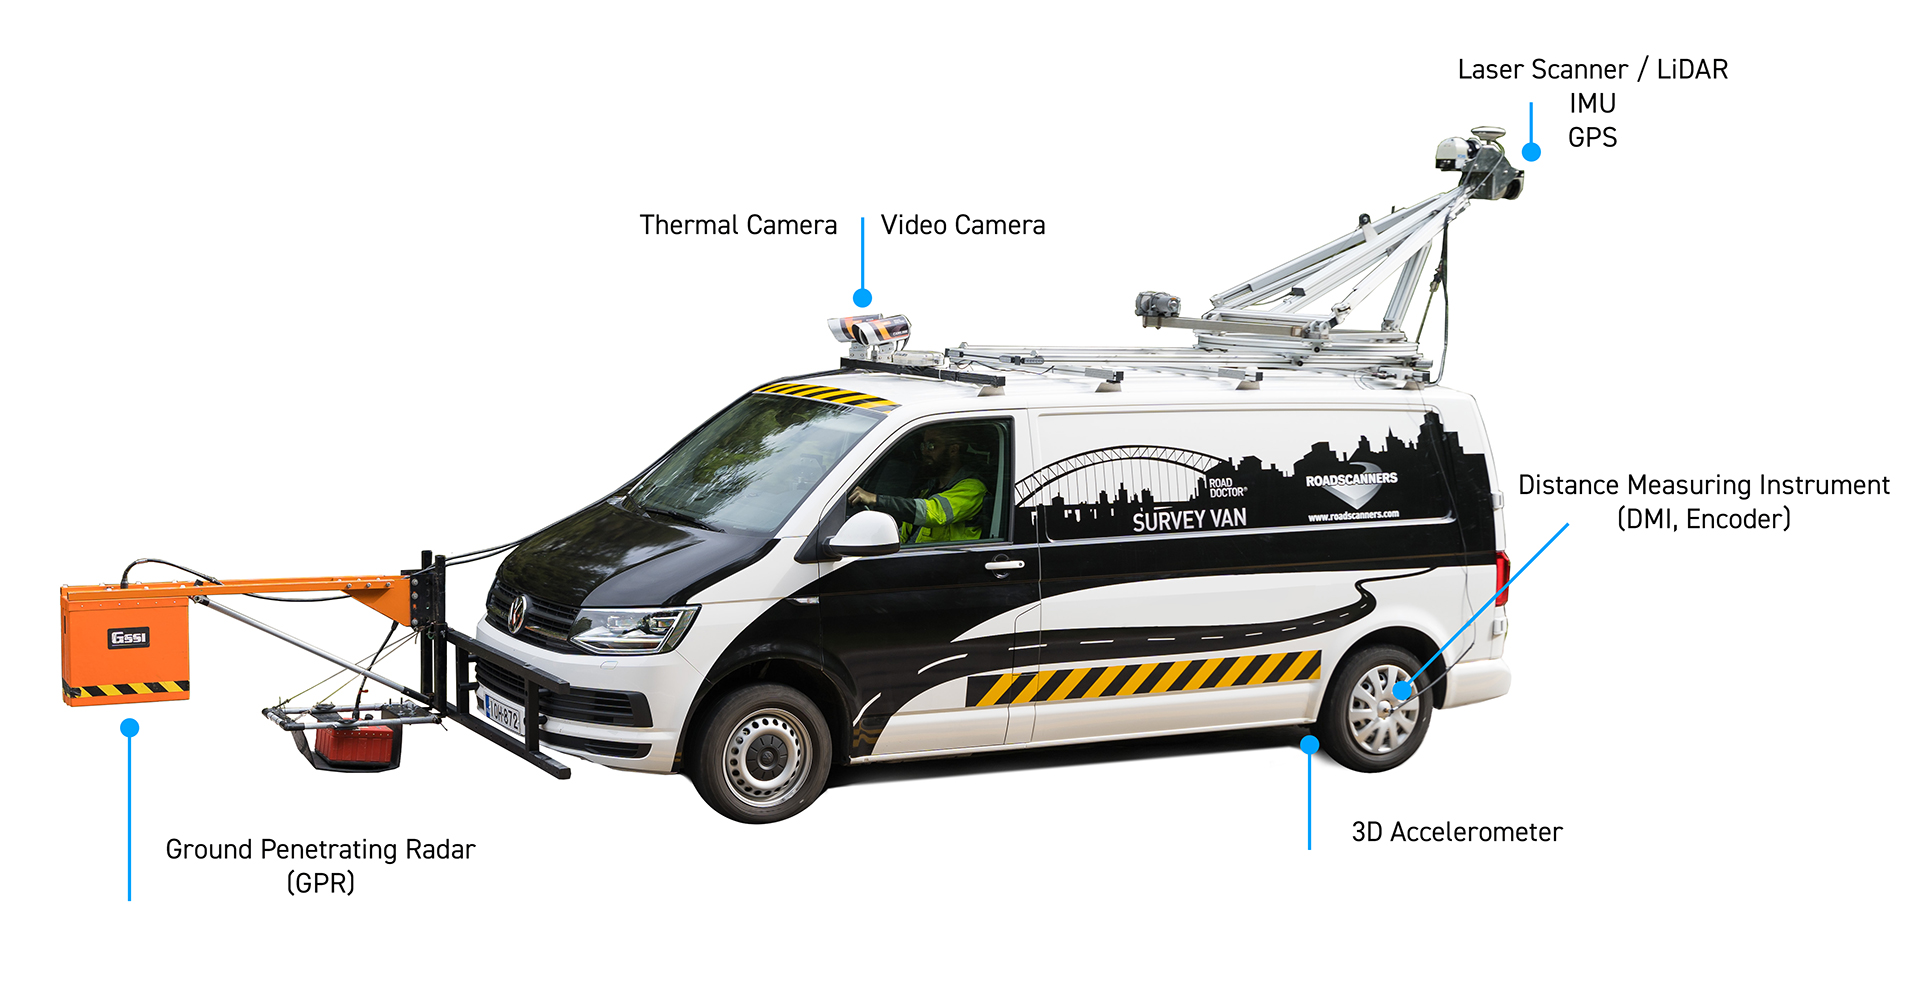 Road Doctor Survey Van for road condition data collection, survey and analysis